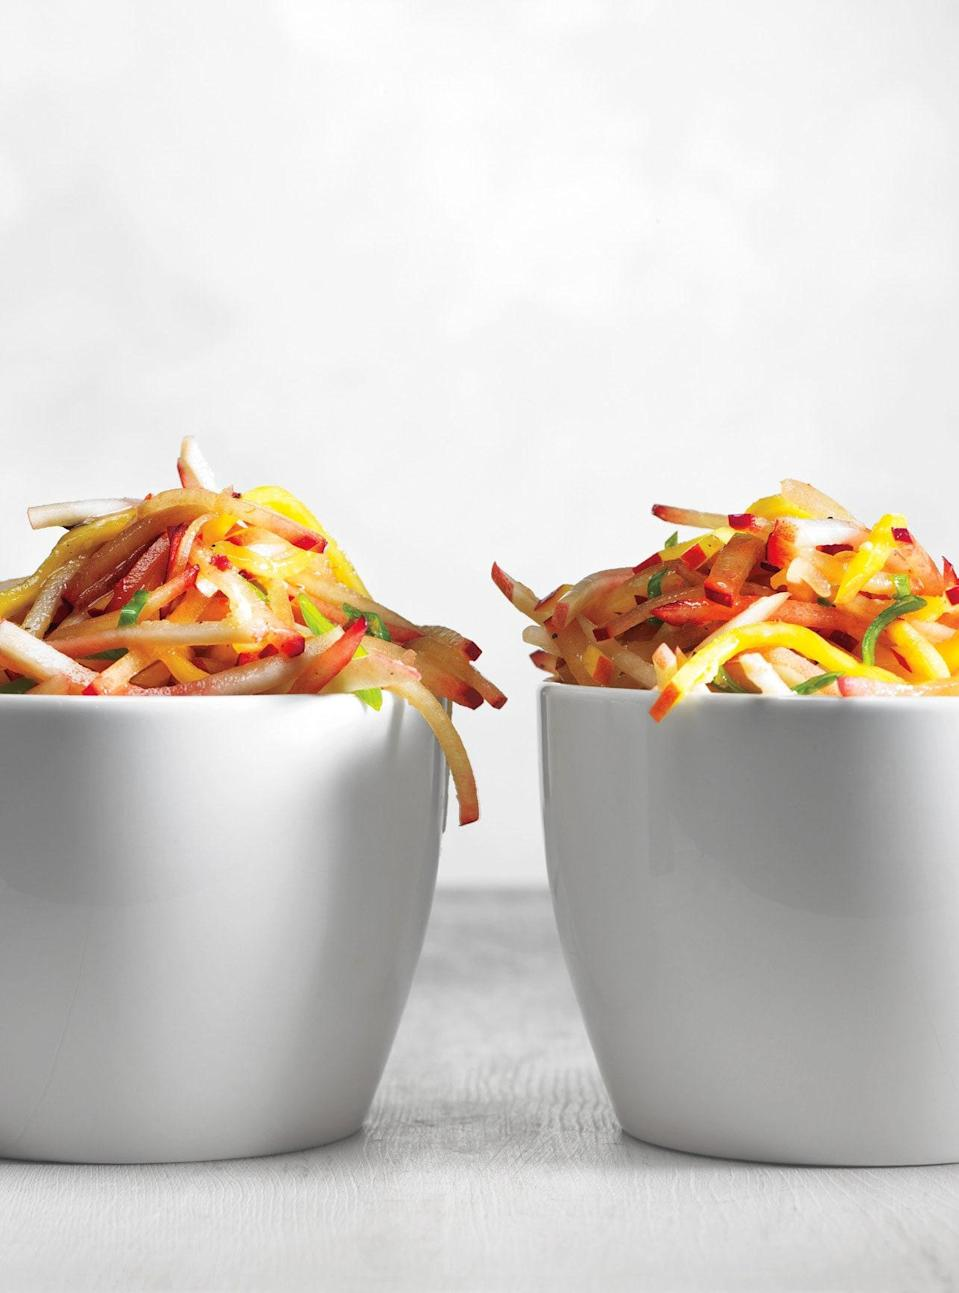 """Serve this succulent slaw as a side or condiment for grilled chicken or pork. Use slightly underripe fruits, which julienne better than soft, juicy ones. <a href=""""https://www.epicurious.com/recipes/food/views/stone-fruit-slaw-366407?mbid=synd_yahoo_rss"""" rel=""""nofollow noopener"""" target=""""_blank"""" data-ylk=""""slk:See recipe."""" class=""""link rapid-noclick-resp"""">See recipe.</a>"""